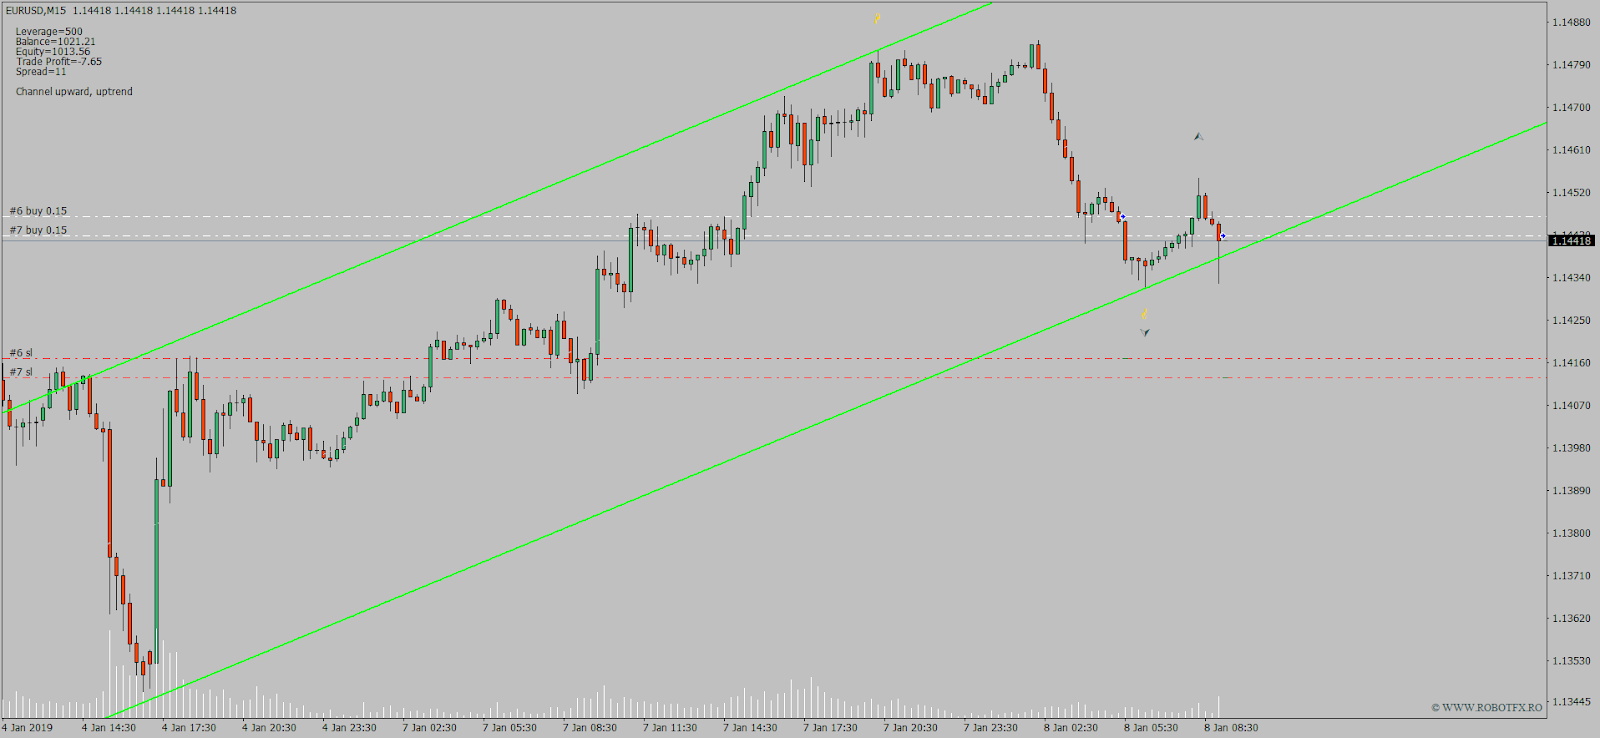 Forex trading chart describing how to trade a price channel